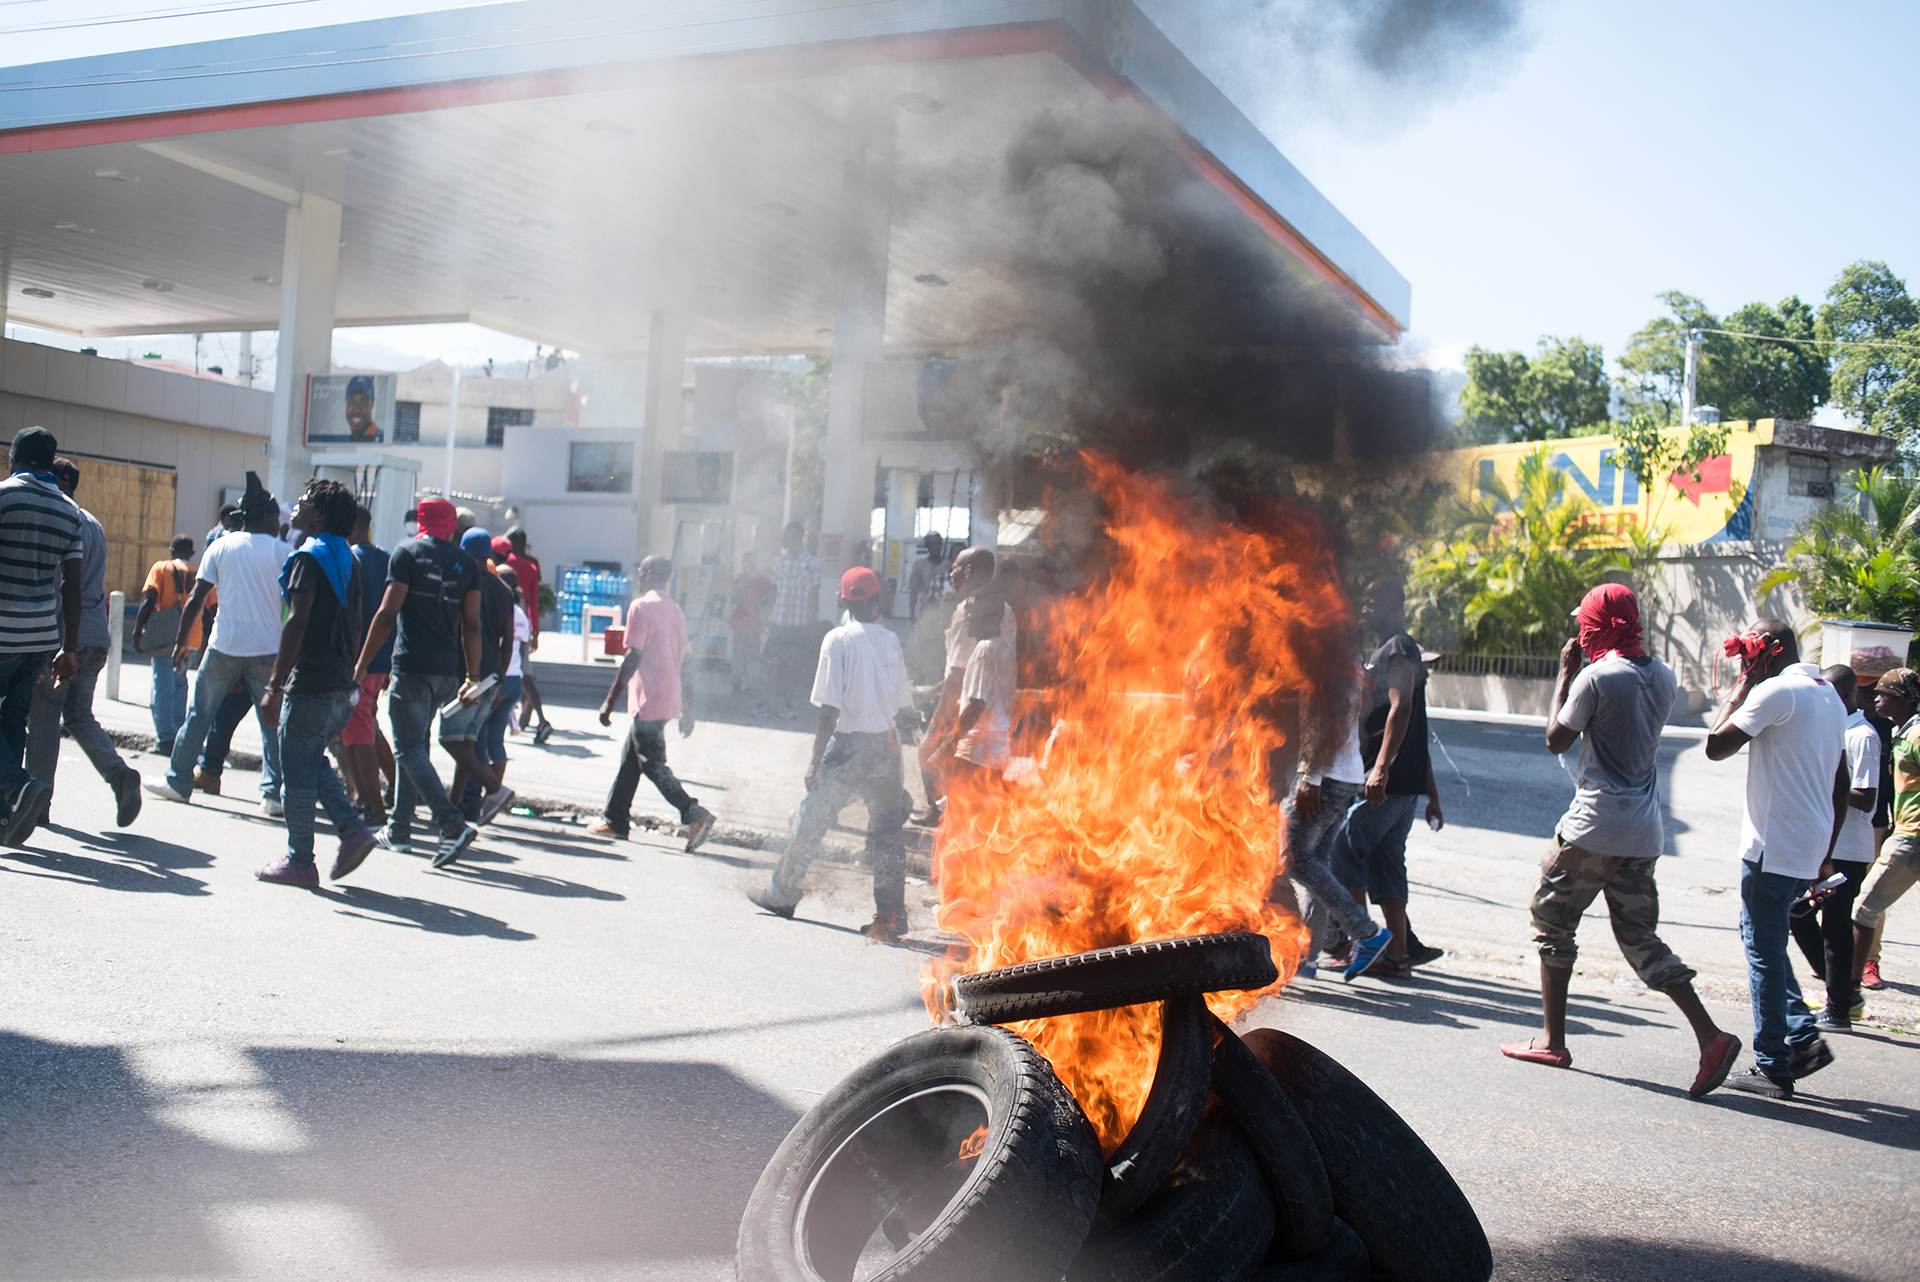 A stack of tires on fire at a petrol station as protesters march behind